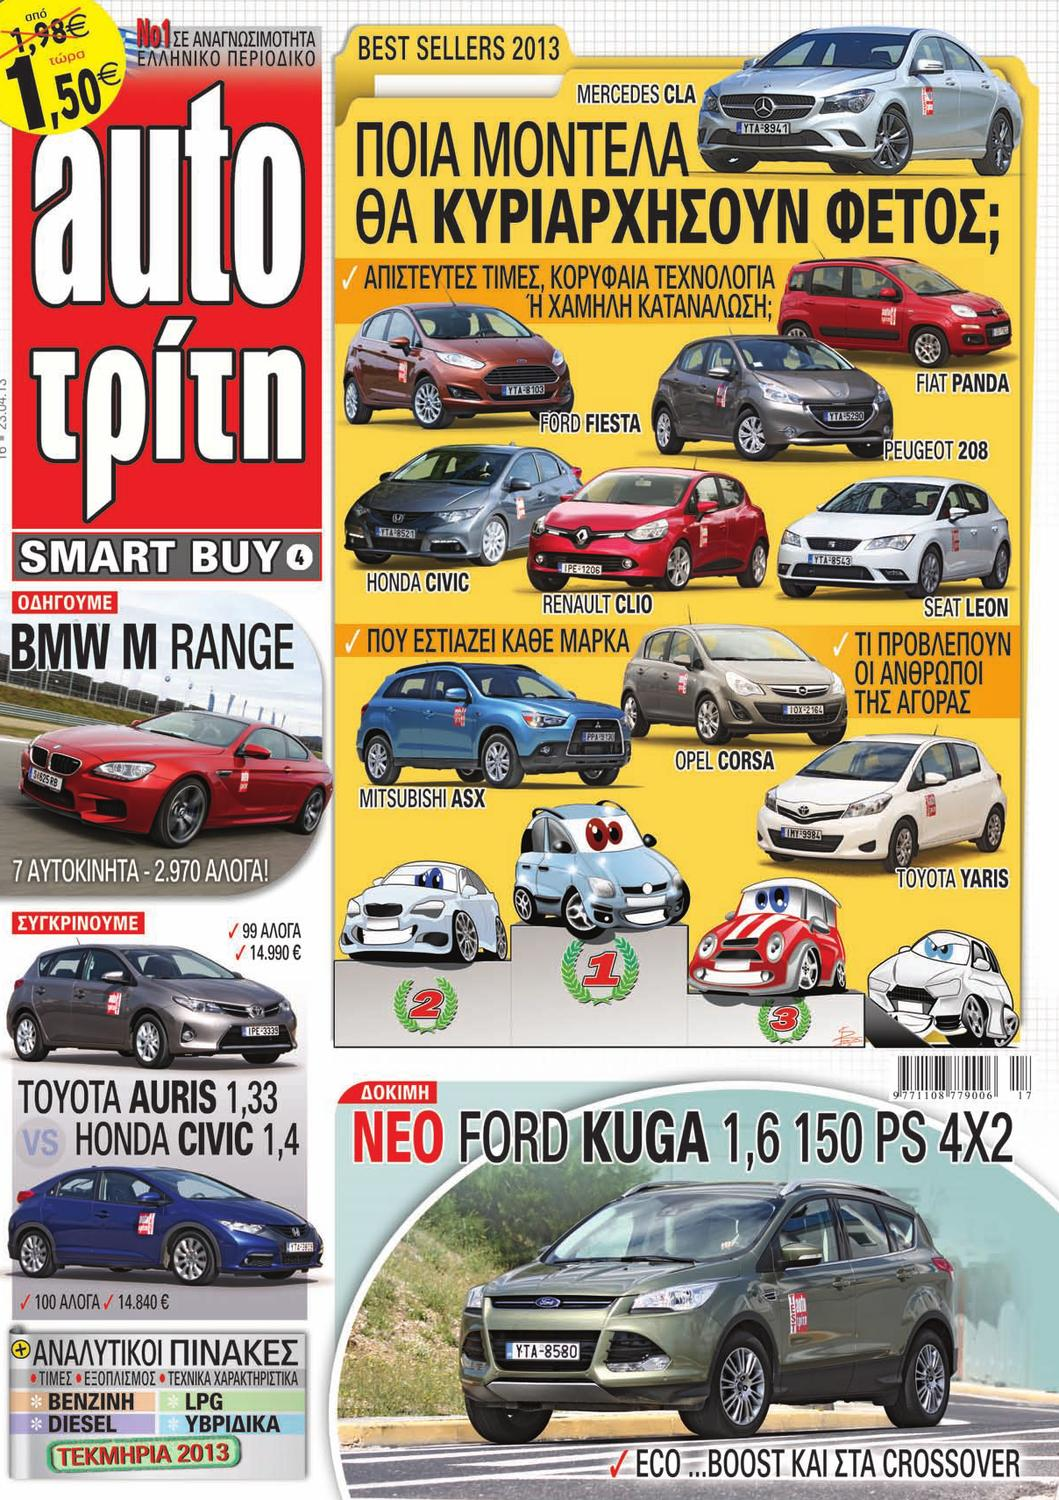 AUTO ΤΡΙΤΗ 16 2013 by autotriti - issuu 365749405b9